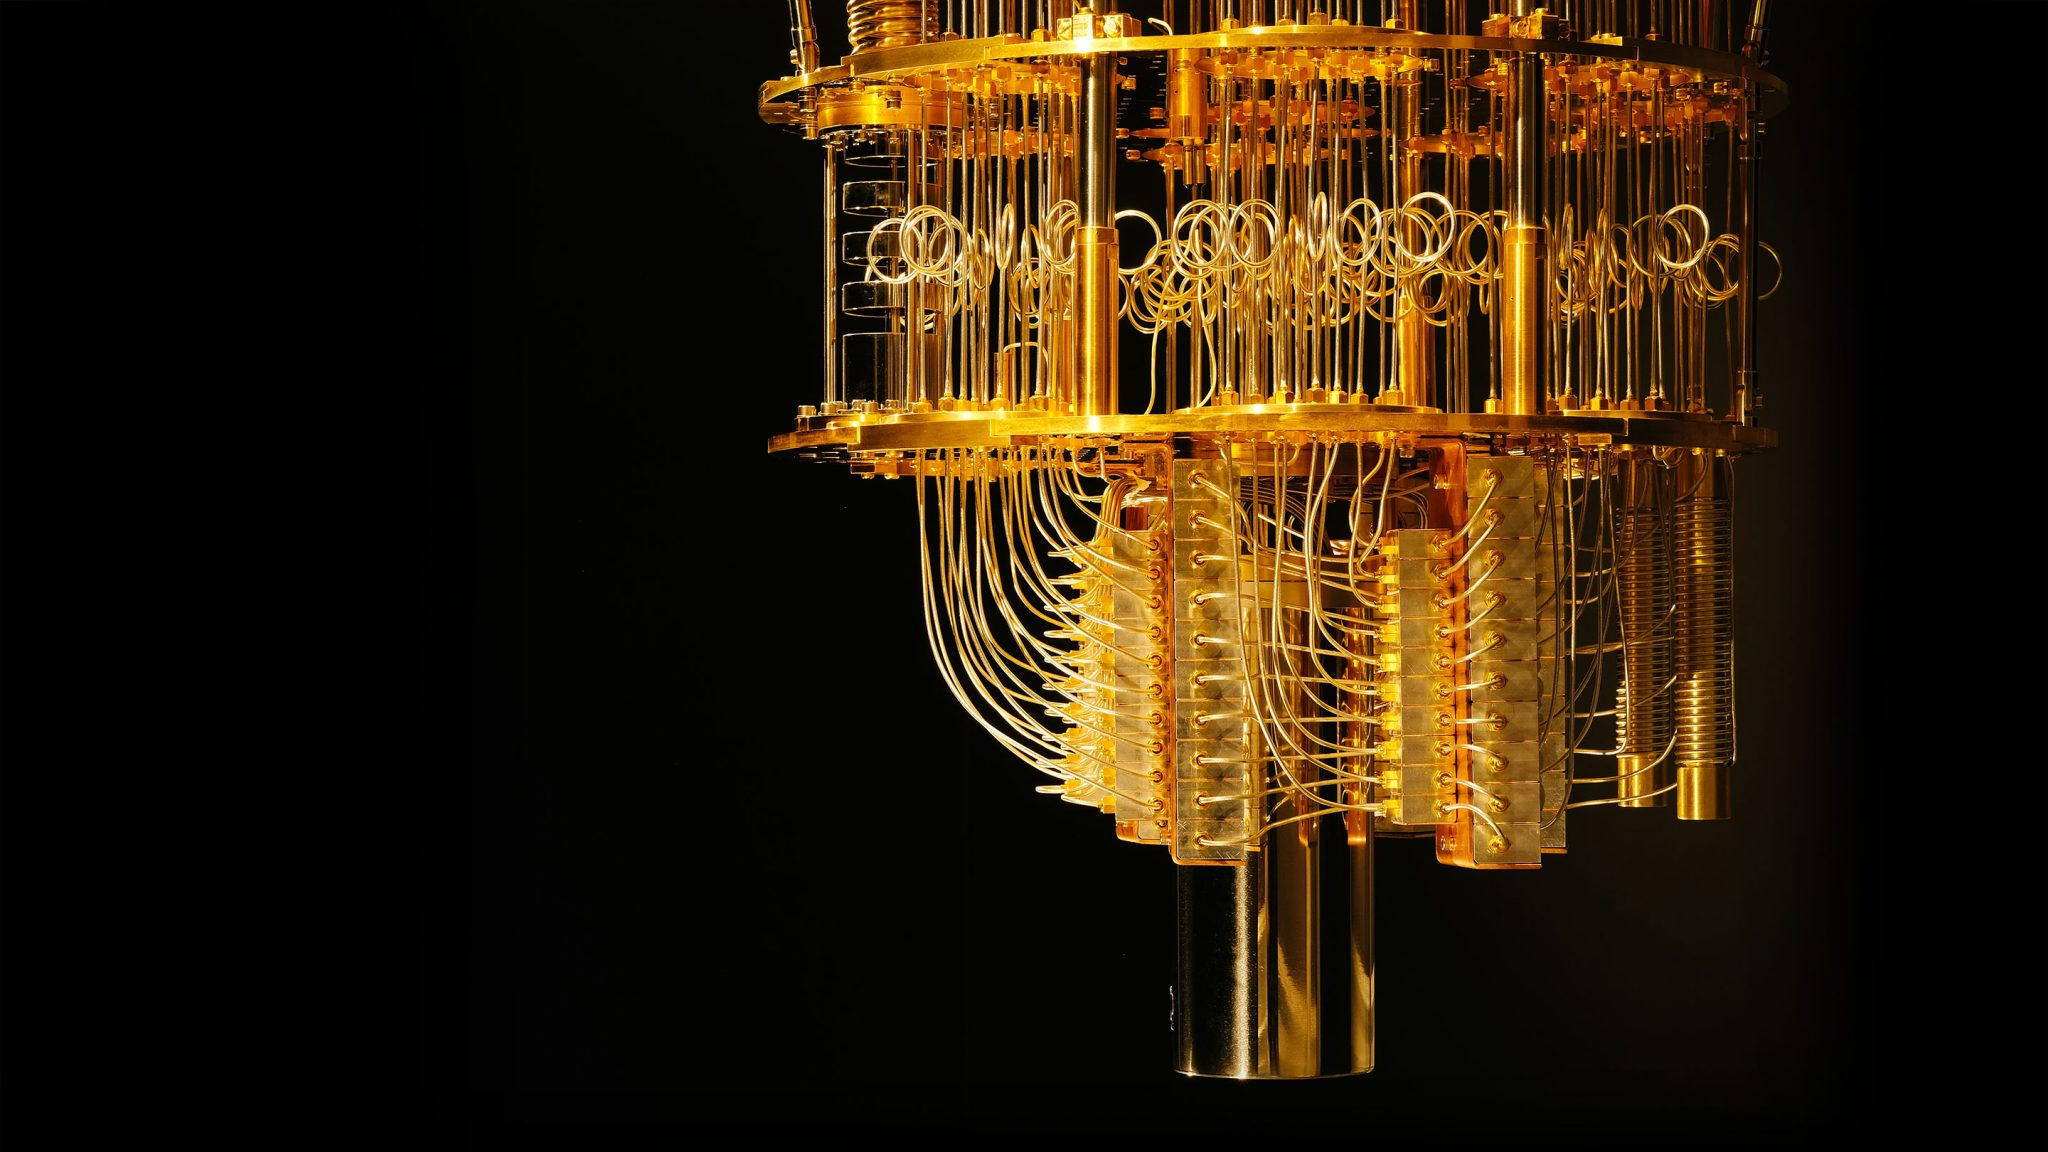 IBM's quantum computer - one of the first quantum computers to be developed. Photo via IBM